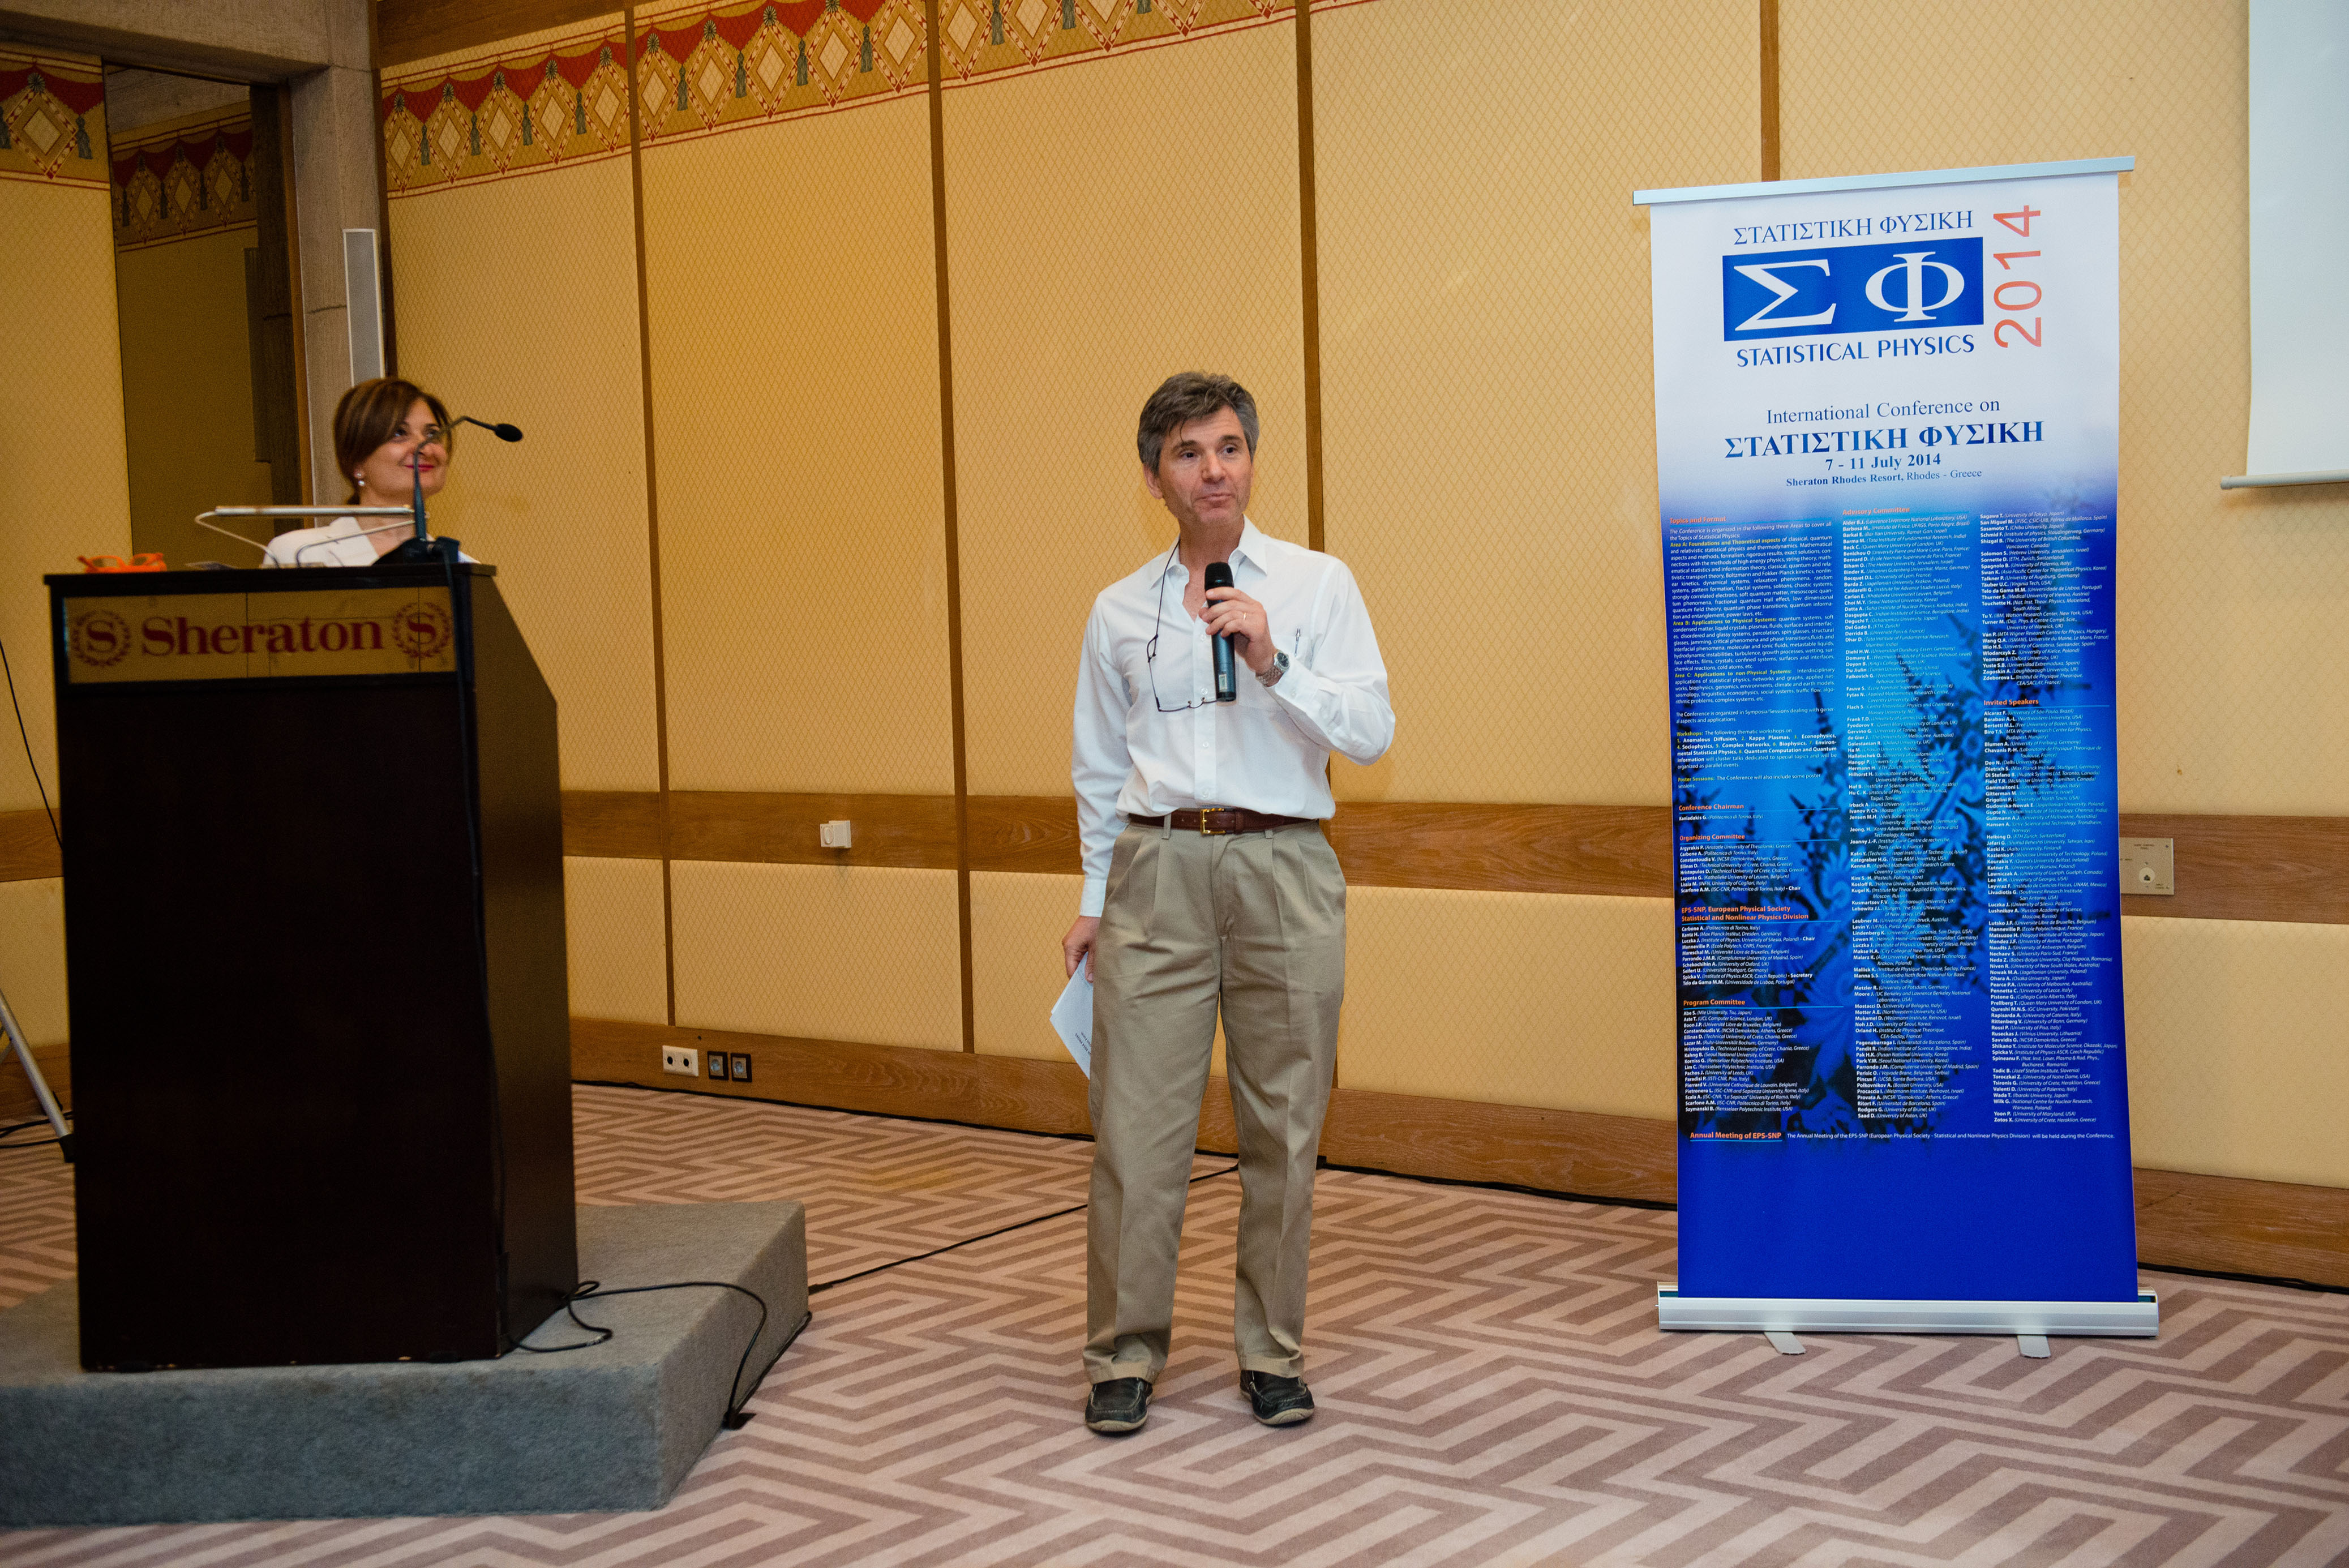 ΣΦ 2014 International Conference, Rhodes 2014